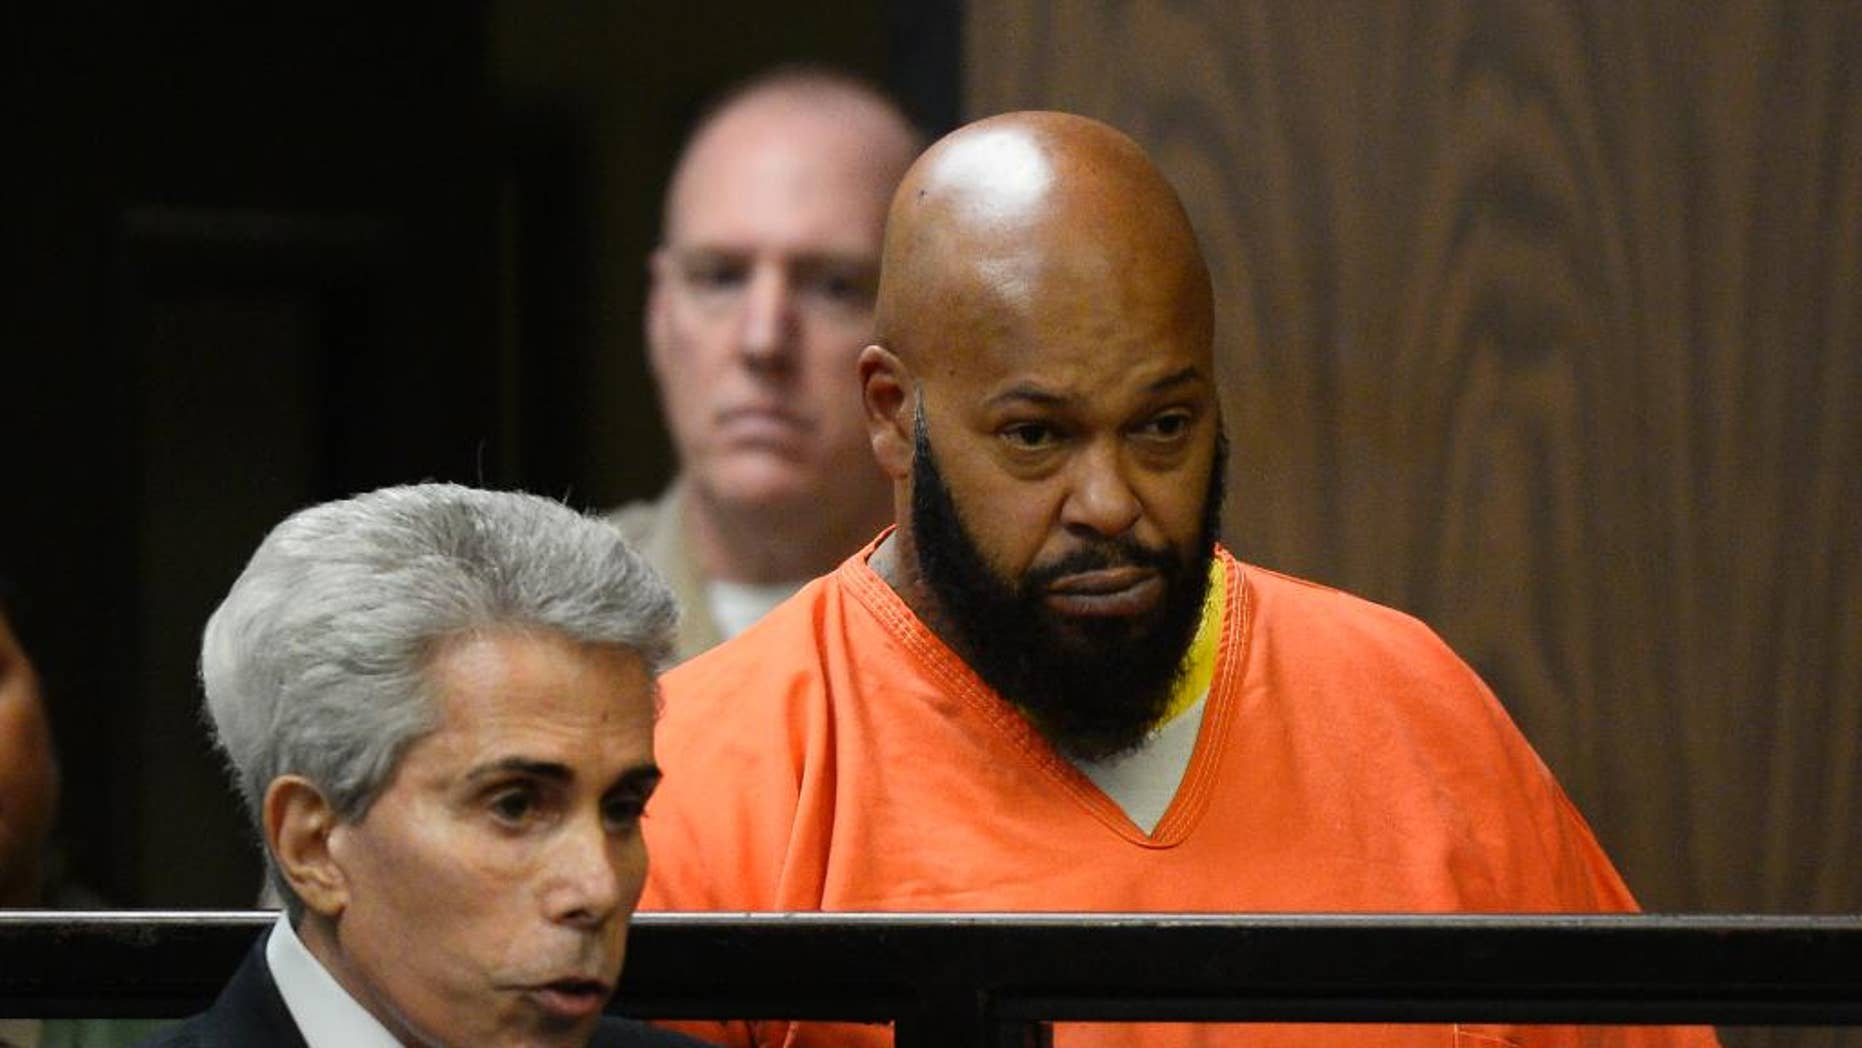 """FILE - In this Tuesday, Feb. 3, 2015, file photo, Marion """"Suge"""" Knight, right, is joined by his attorney David Kenner, left, during his arraignment, in Compton, Calif. Knight's lawyer says a video of a confrontation that ended in a fatal hit-and-run appears to show the former rap mogul was ambushed. Kenner says he has briefly reviewed the video that was obtained from a Compton burger stand of the Jan. 29, 2015 confrontation, which left one man dead and another seriously injured.  (AP Photo/Paul Buck, Pool, File)"""